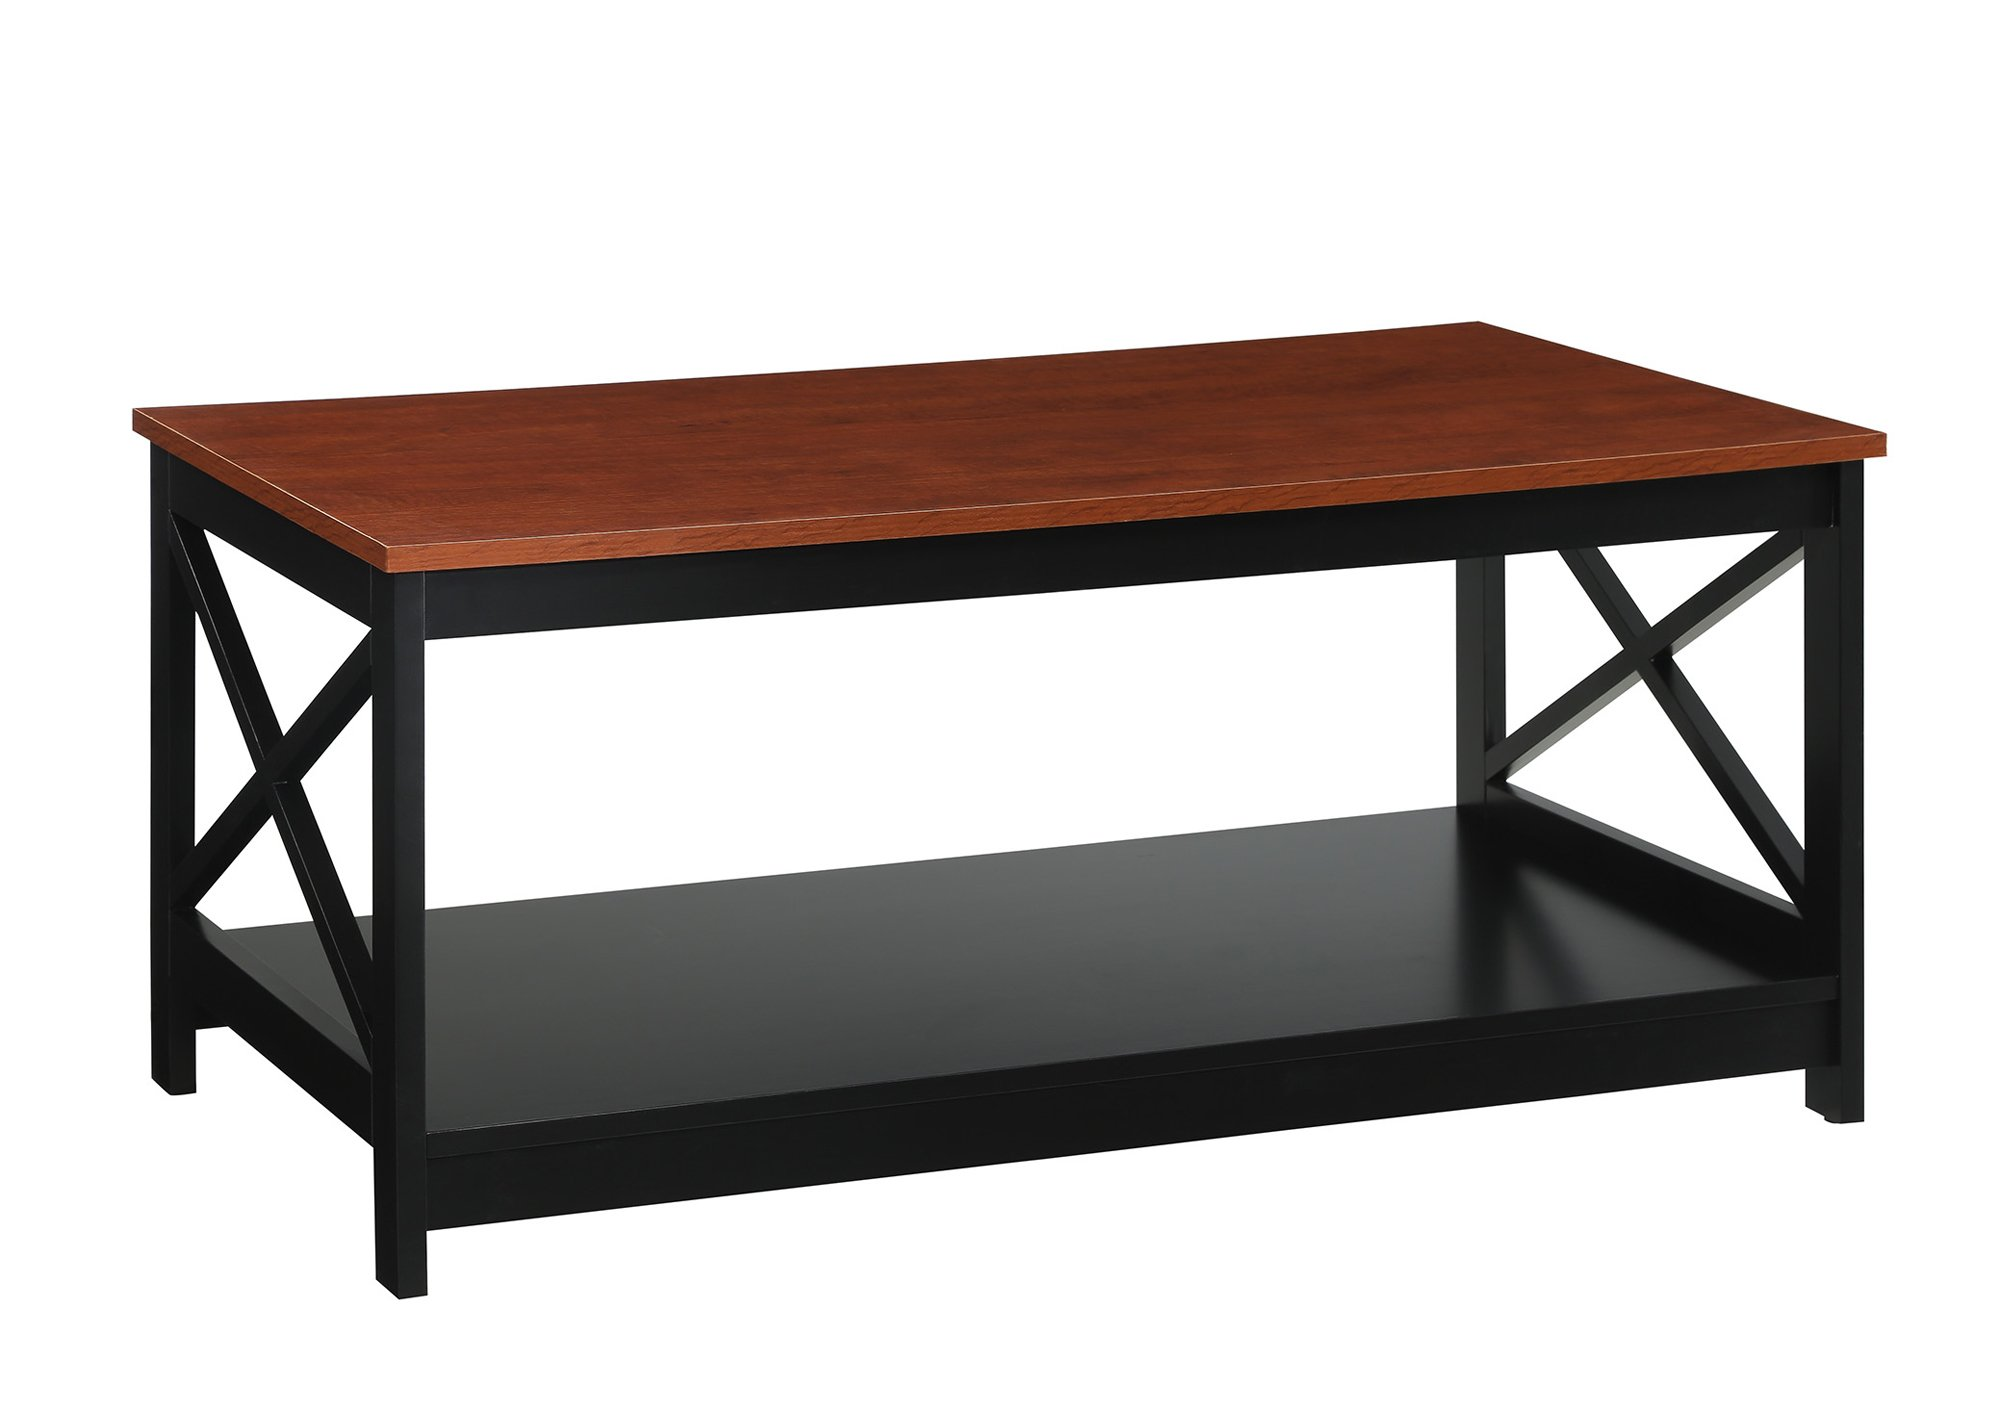 Convenience Concepts Oxford Coffee Table, Cherry/black